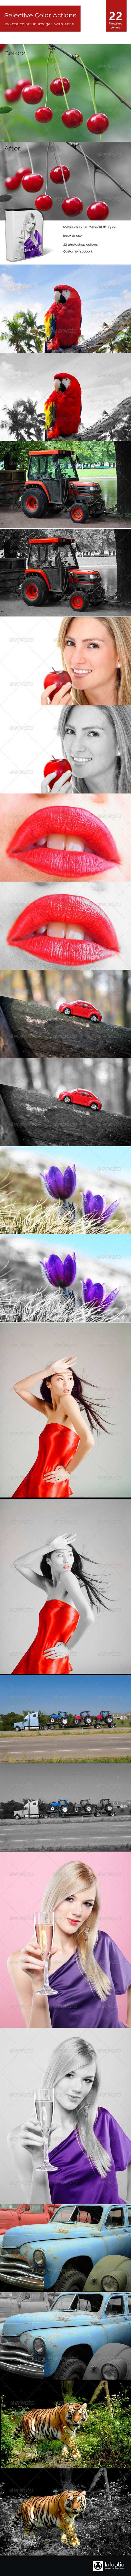 Selective Color Actions - Photo Effects Actions